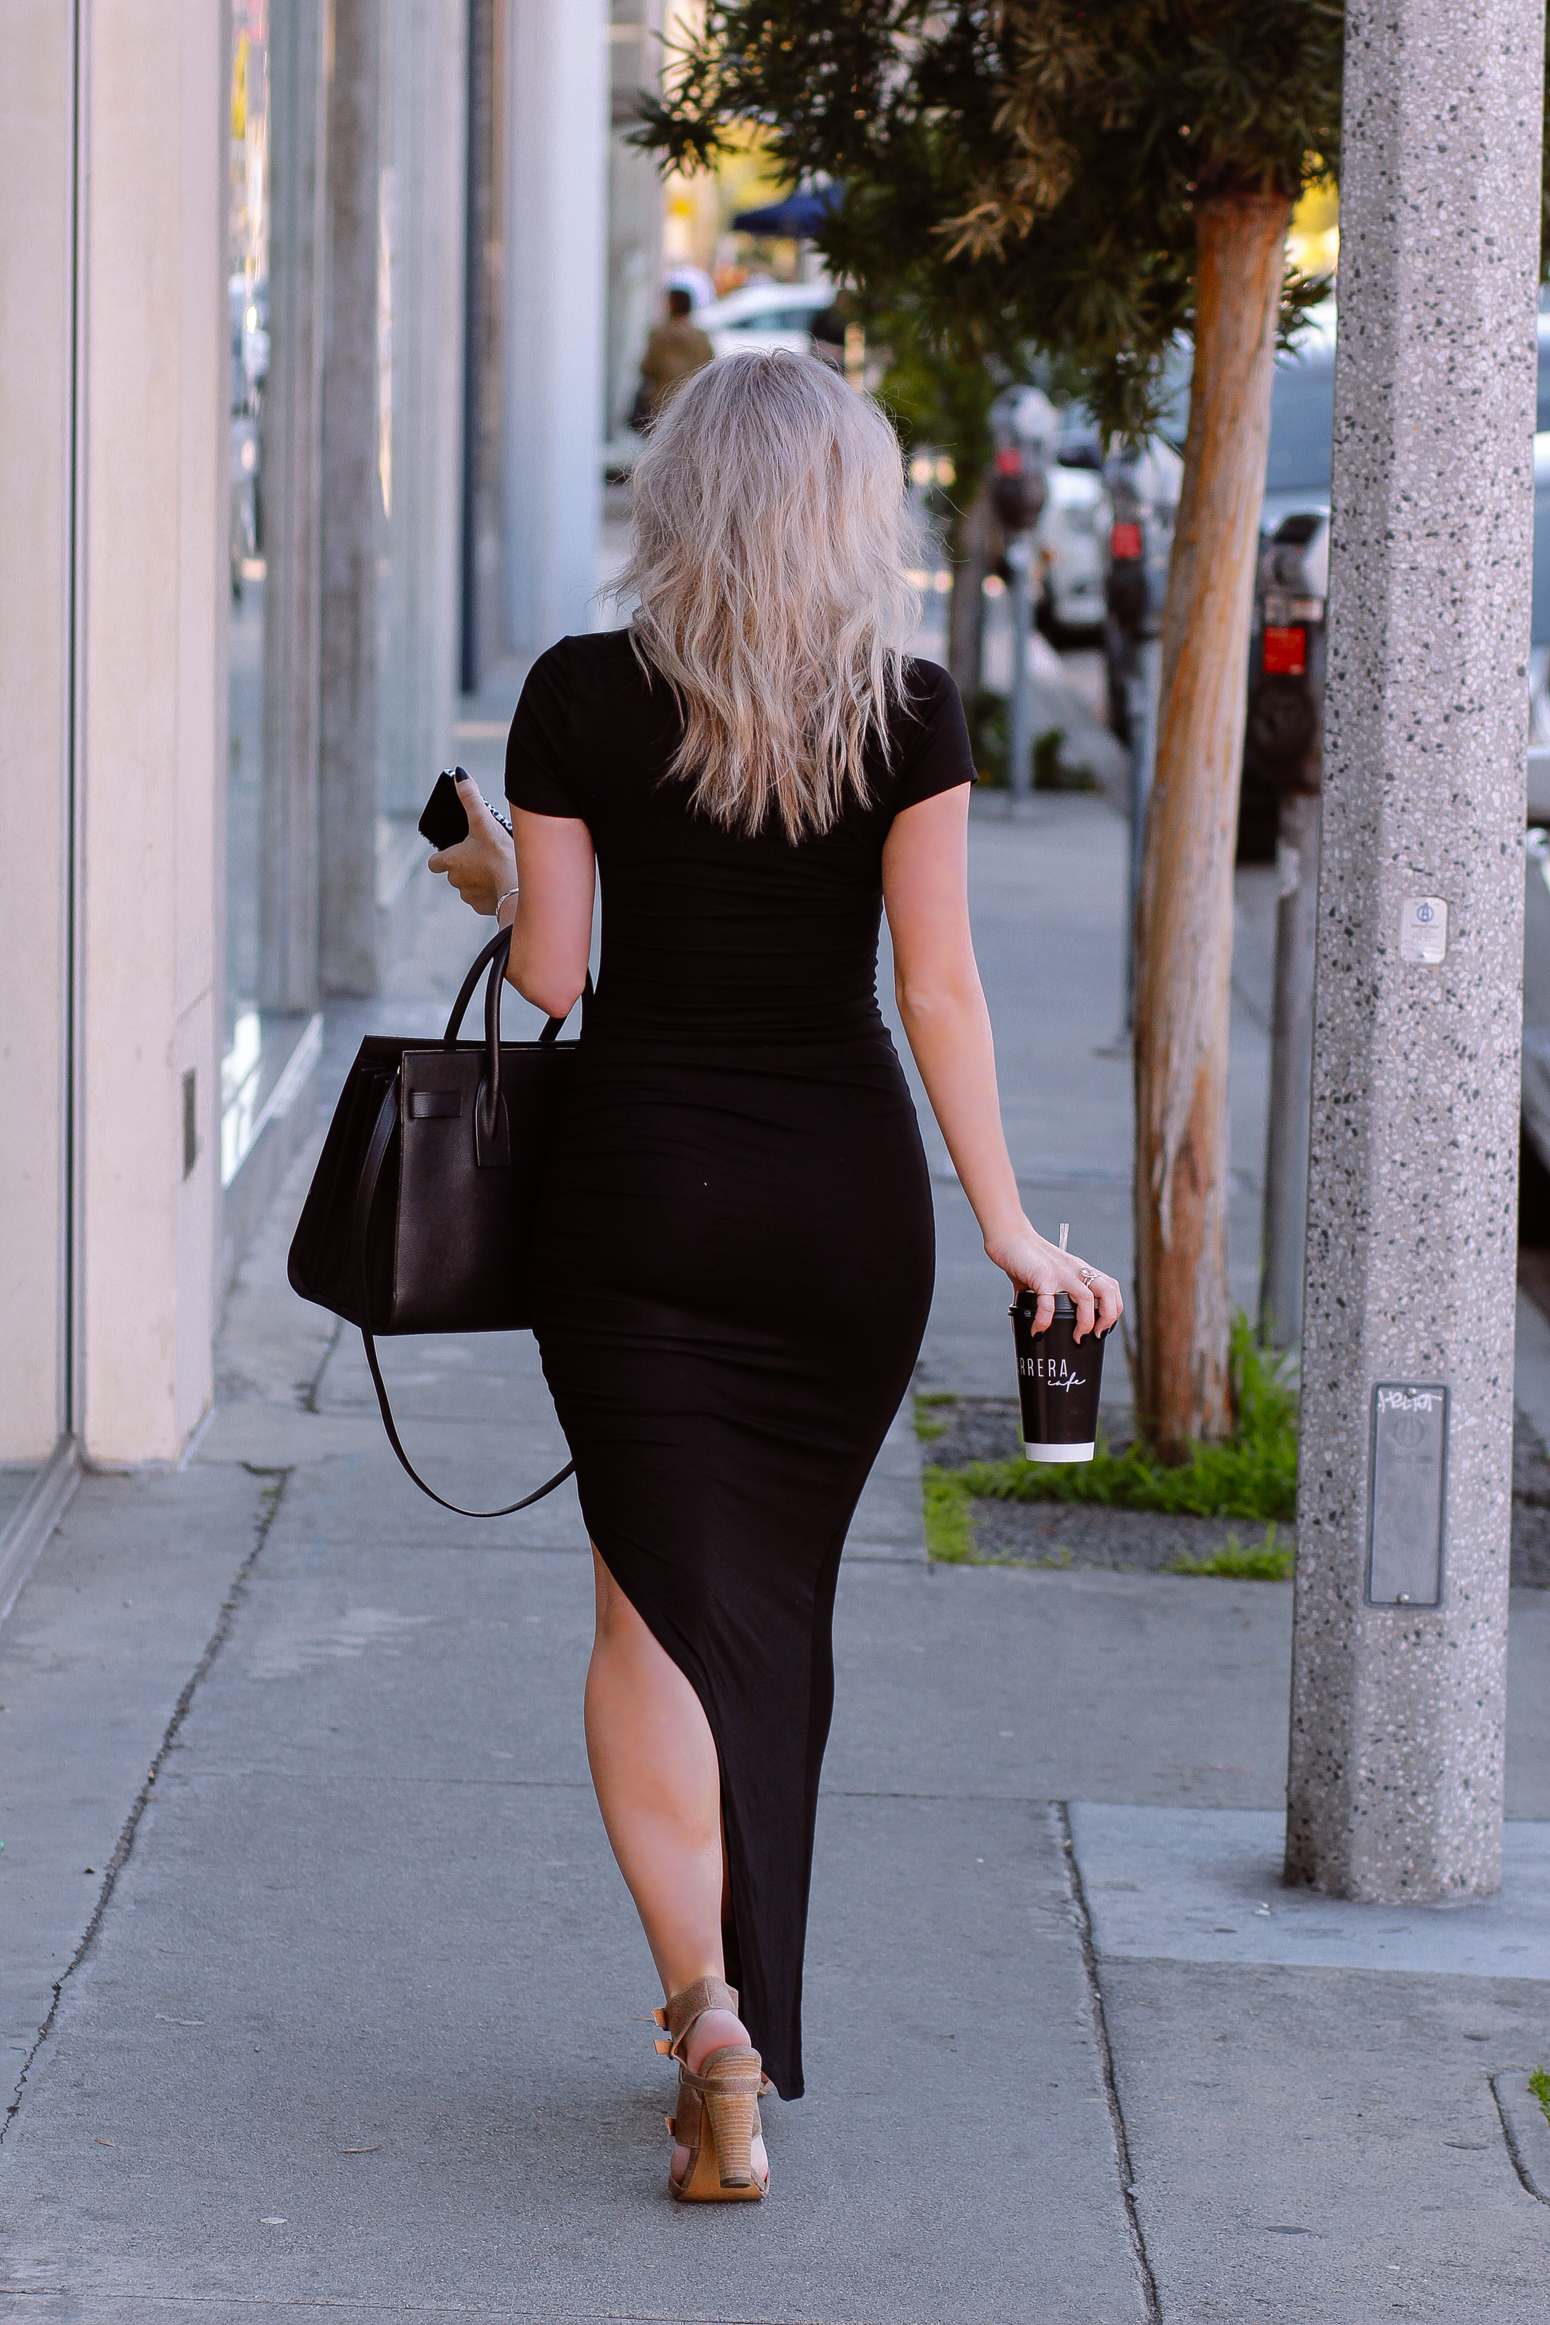 Blondie in the City | LA Fashion Blogger